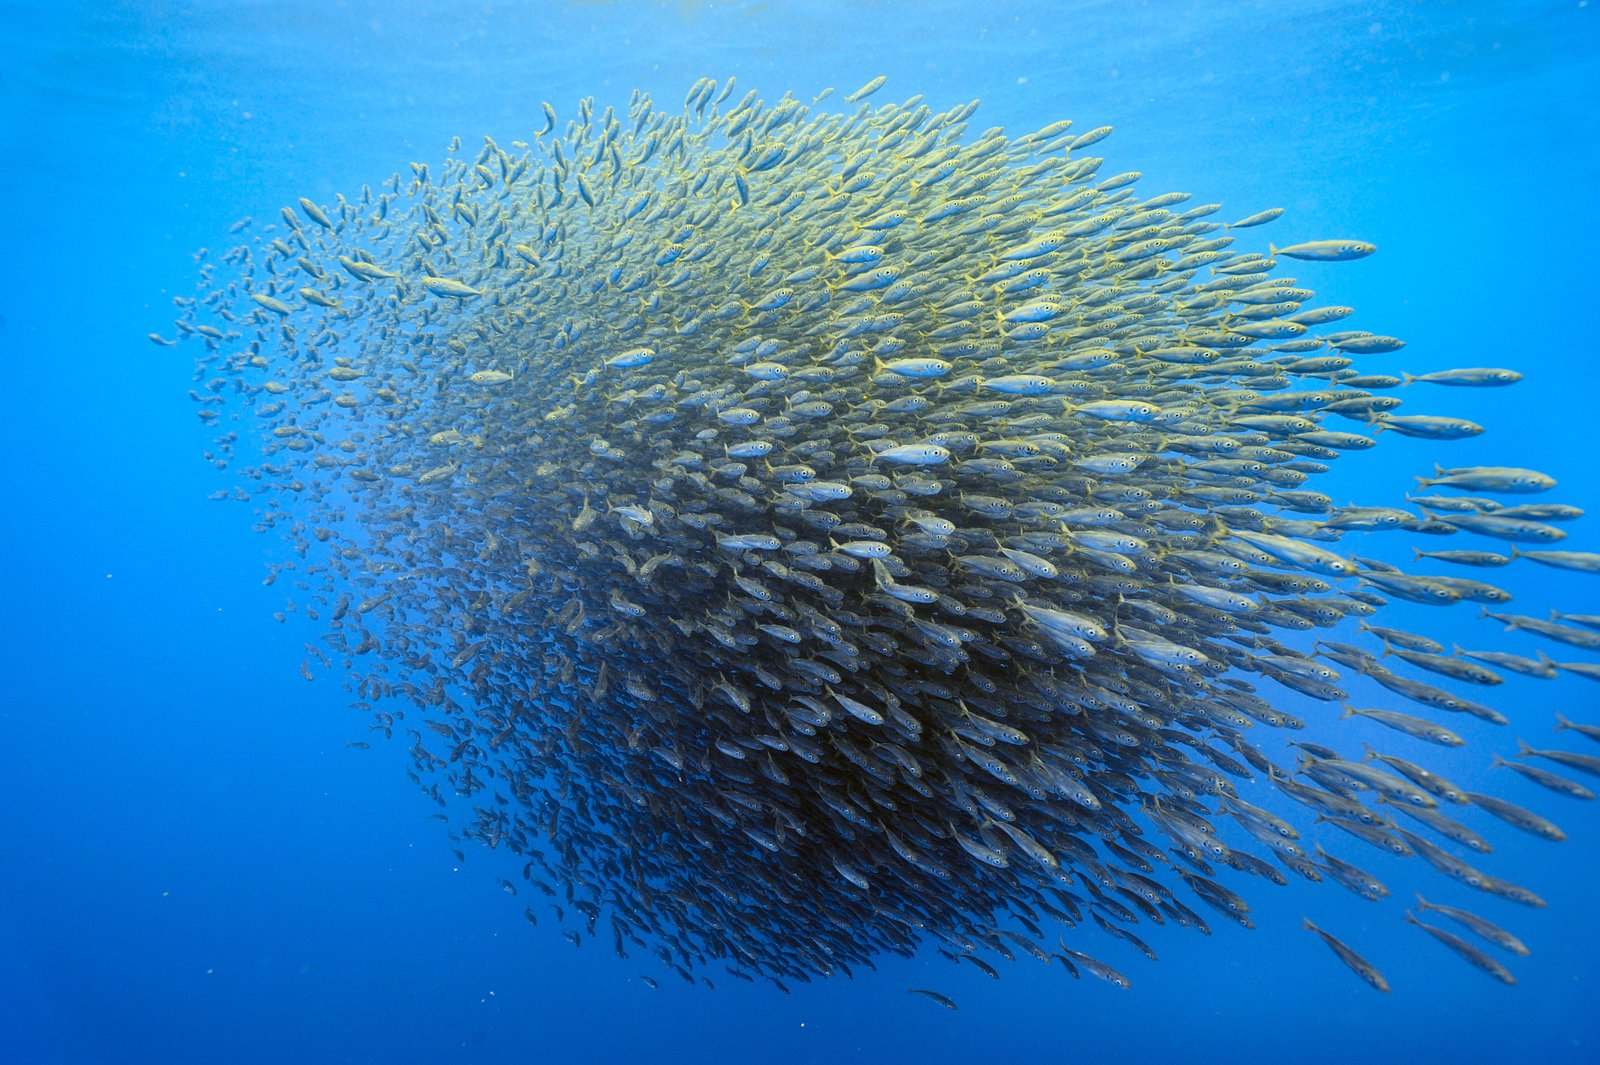 We're Terrible at Distinguishing Real And Fake Schools of Fish | Smart News | Smithsonian Magazine